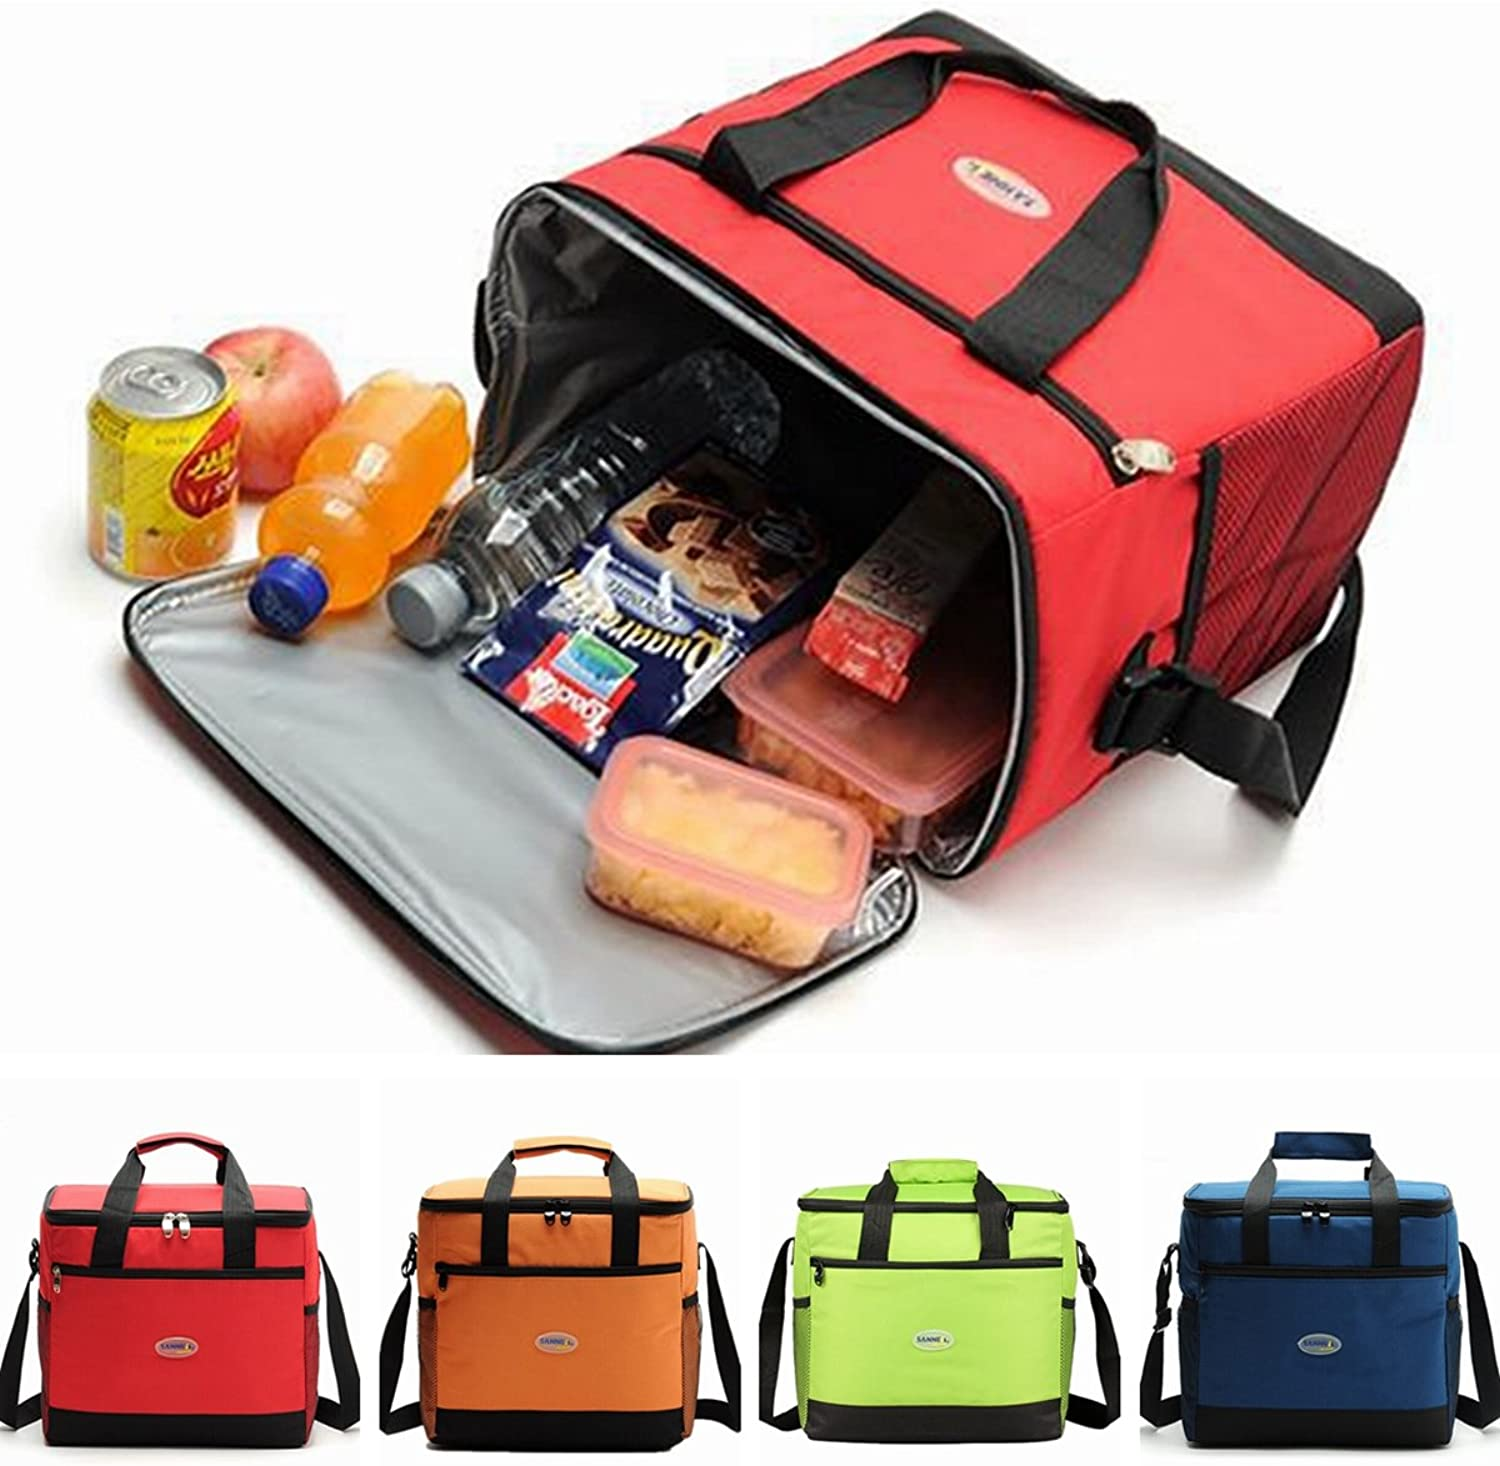 ShopSquare64 Large Insulated Cooler Cool Bag Outdoor Camping Picnic Lunch Shoulder Hand Bag